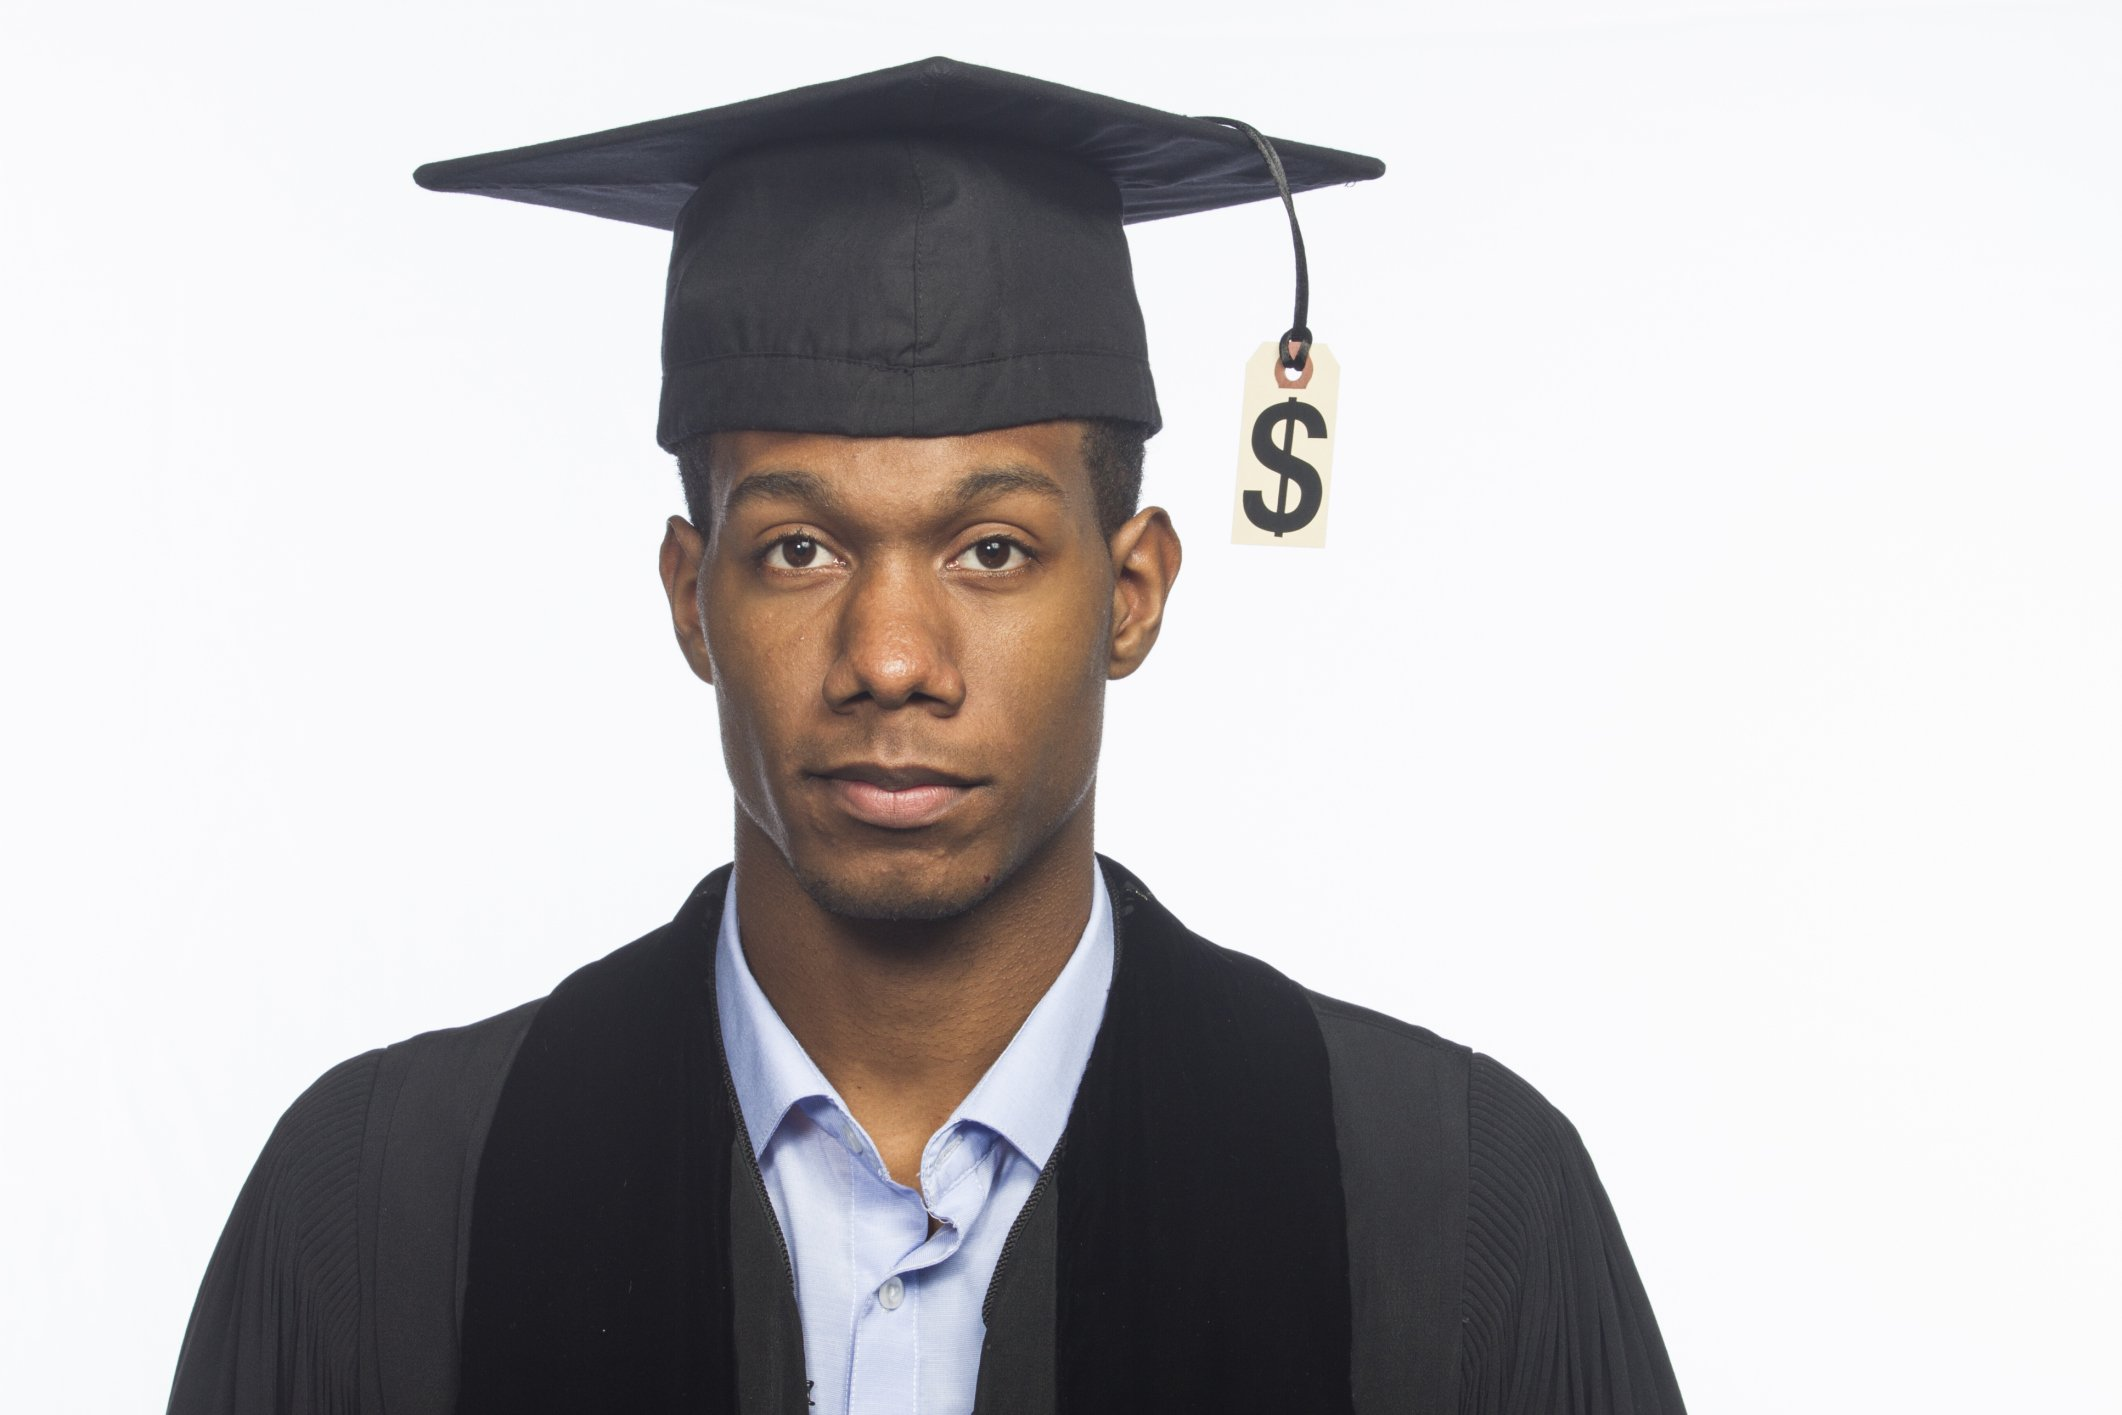 young college graduate wearing robe and mortarboard with price tag hanging from it